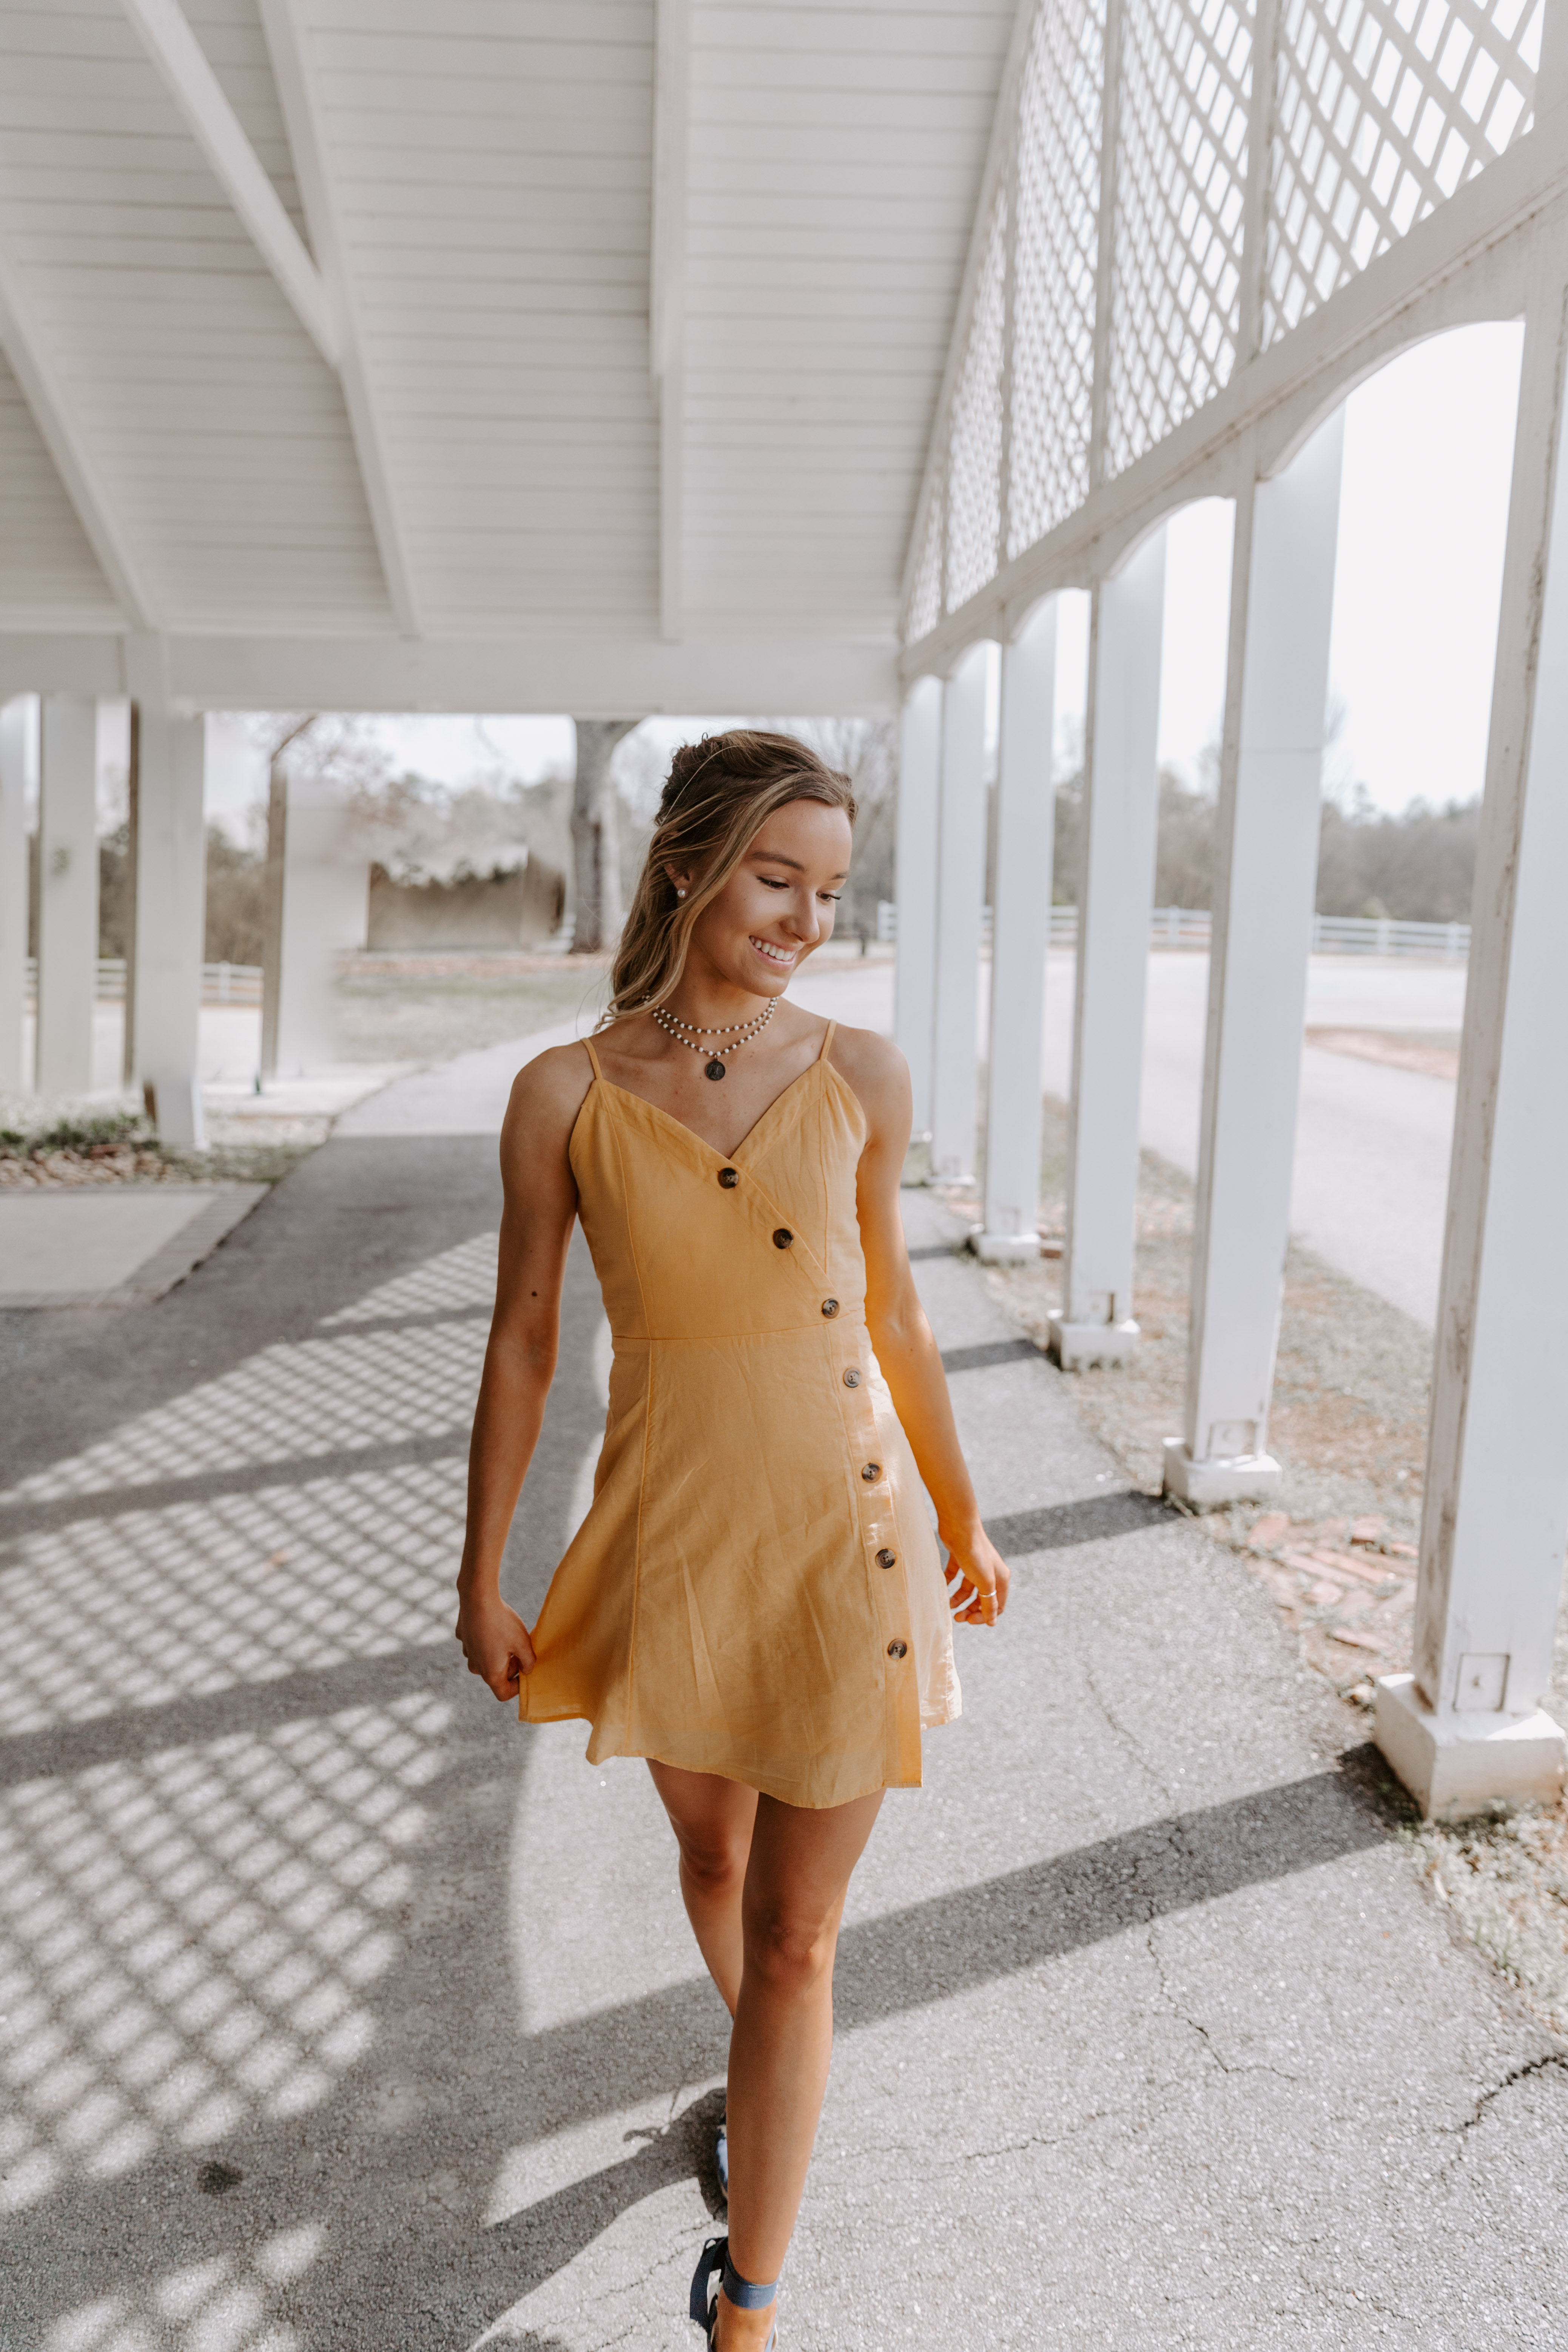 Senior Pictures Open Field Yellow Dress White Fence Portrait Braided Hair